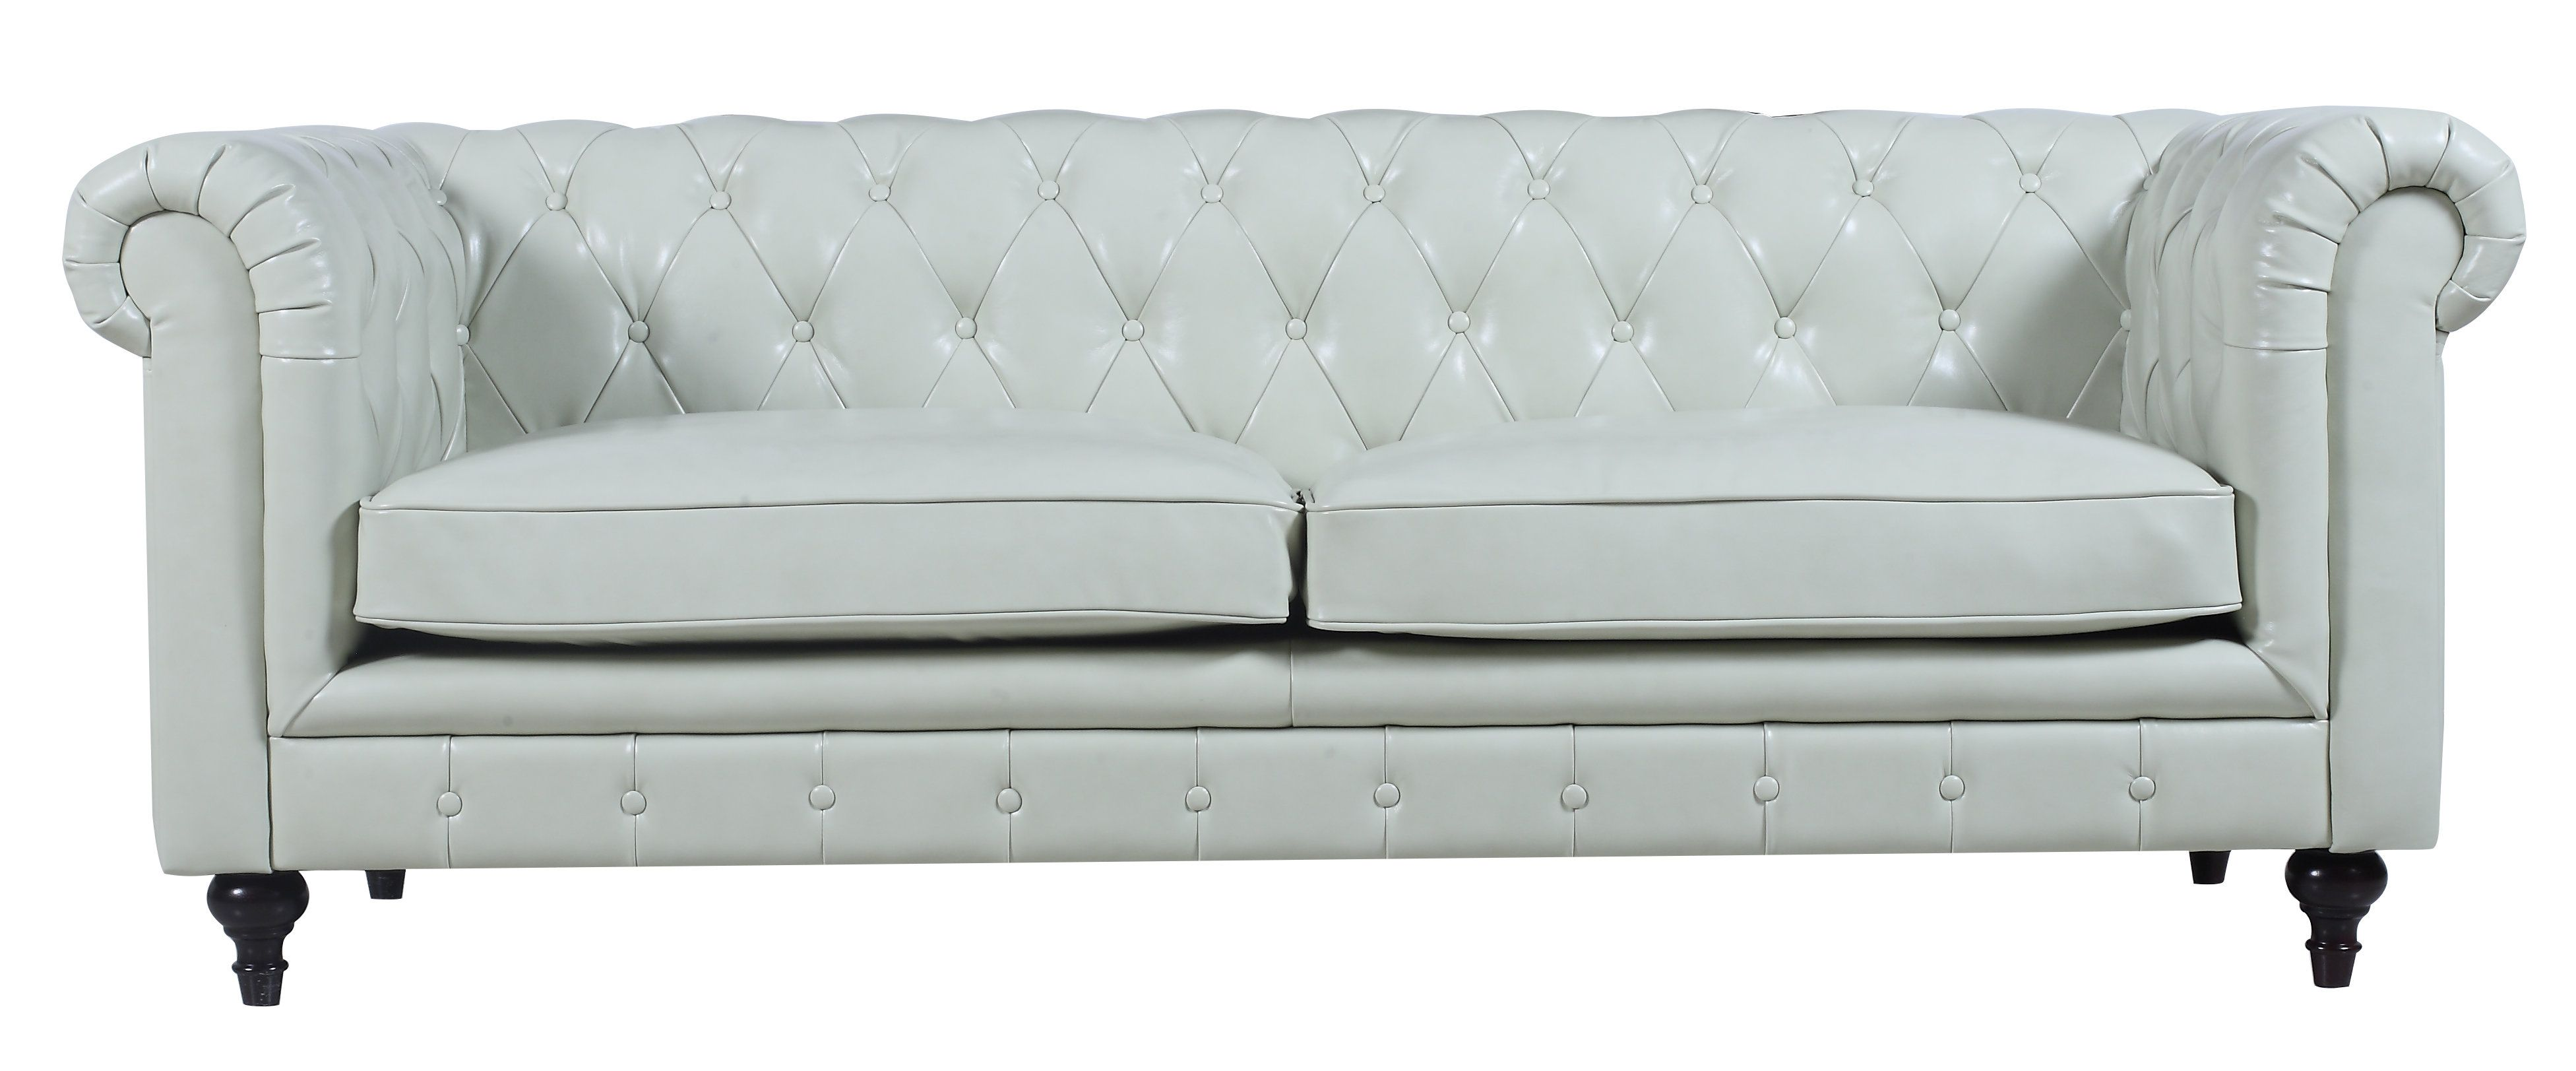 Einzelsessel Günstig Sessel Günstige Chesterfield Sessel Second Hand Möbel Chesterfield